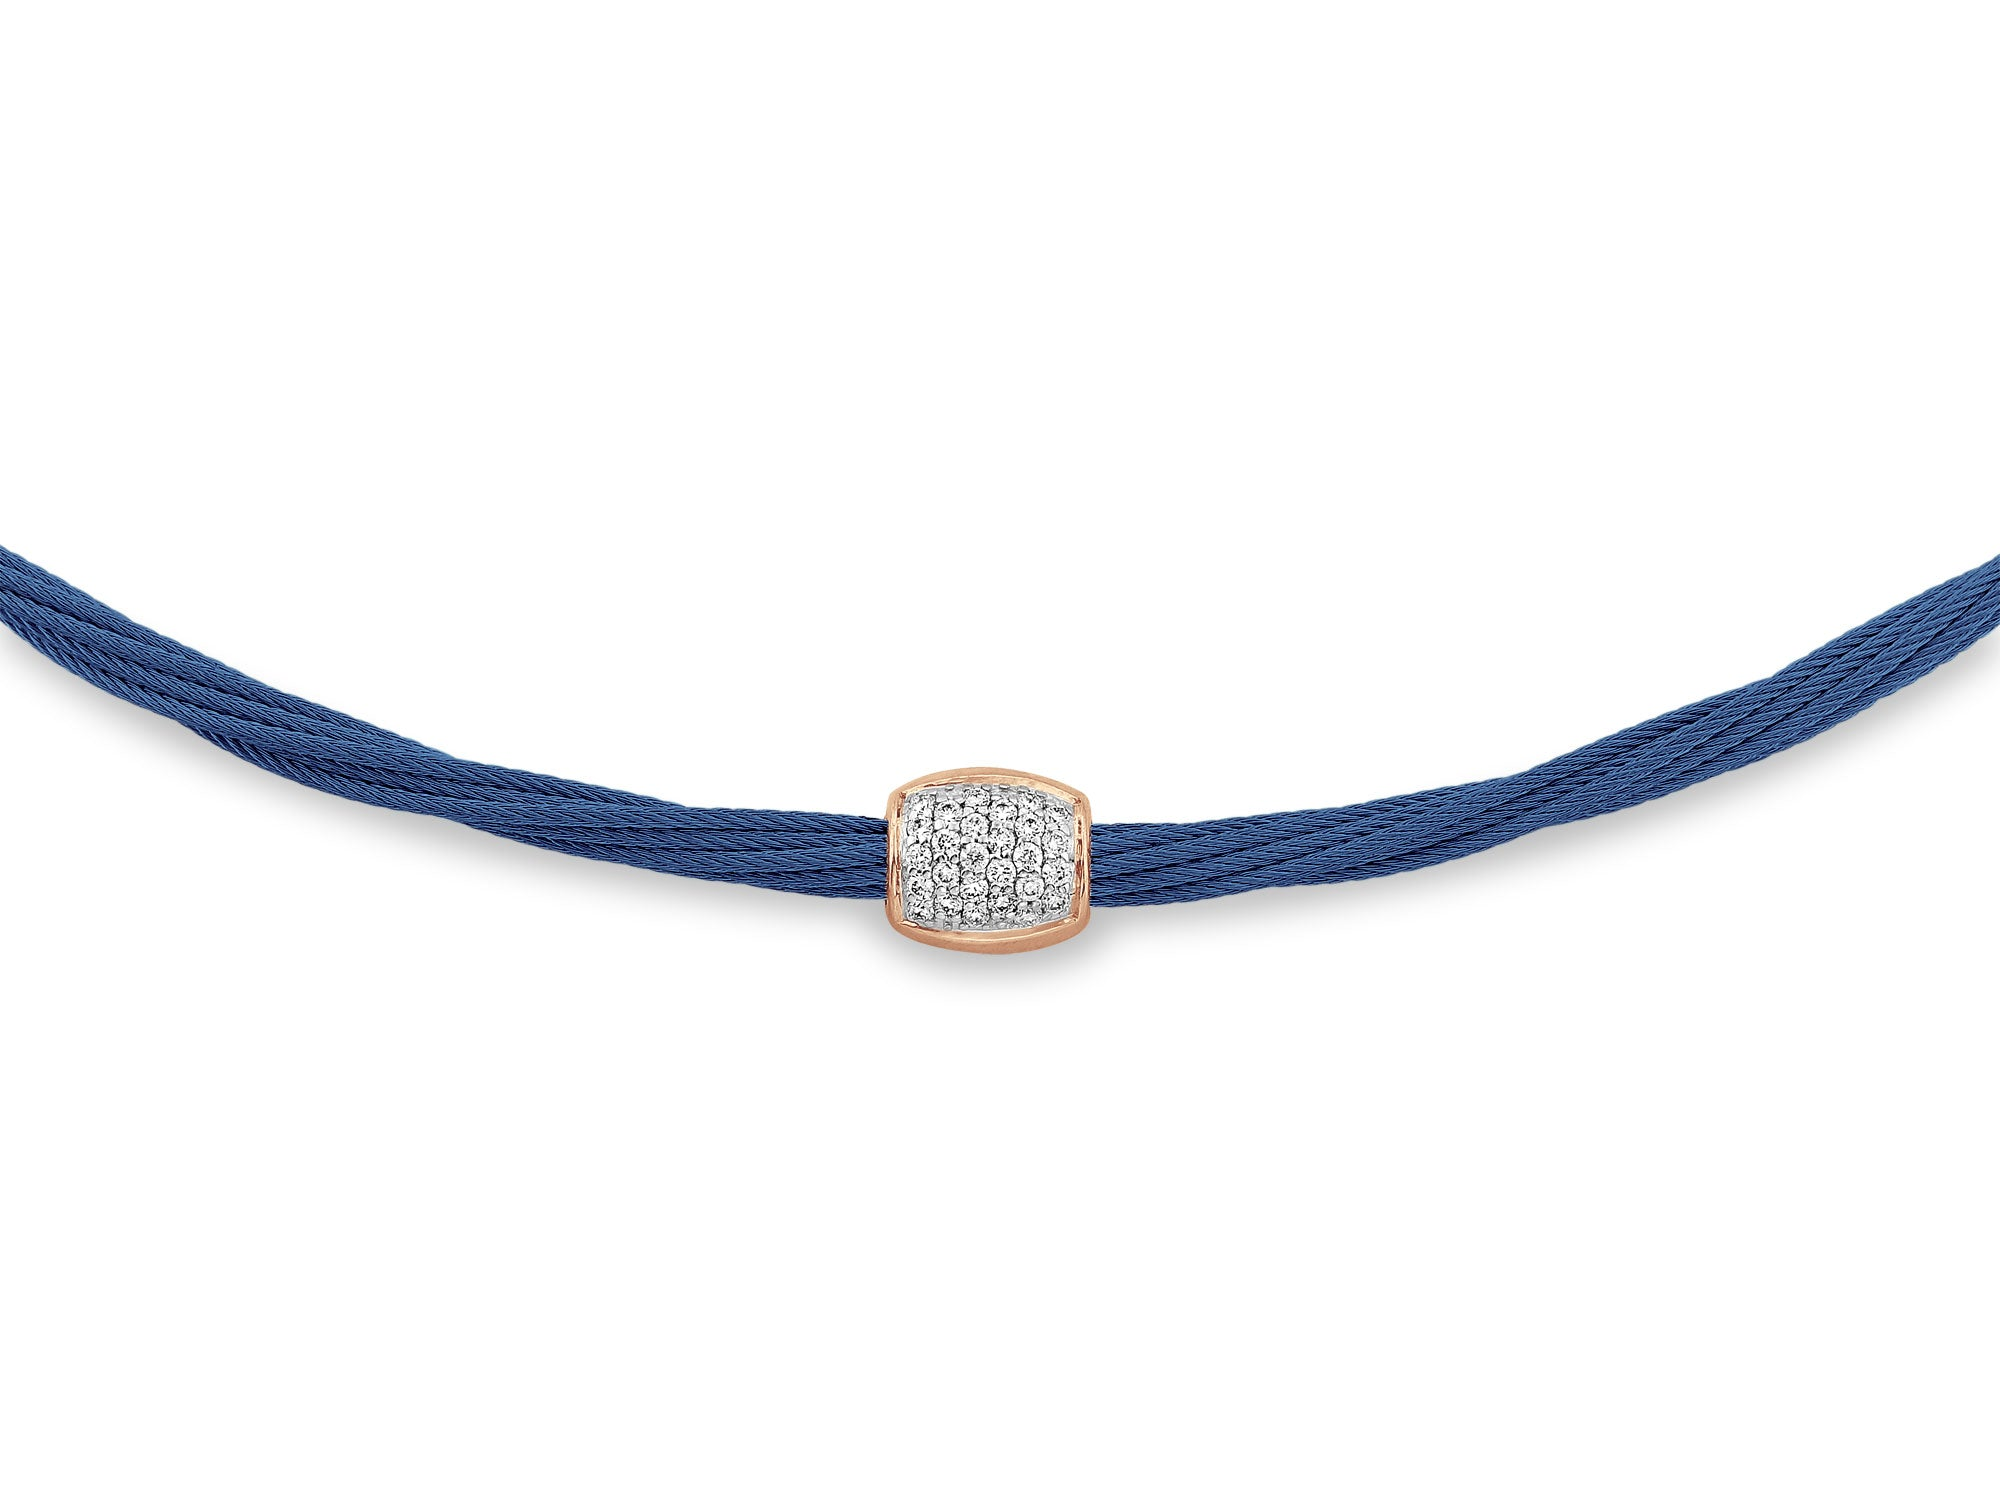 ALOR Classique Women's Multi-Cable Blue Necklace with Center Diamond Station and Gold Accents